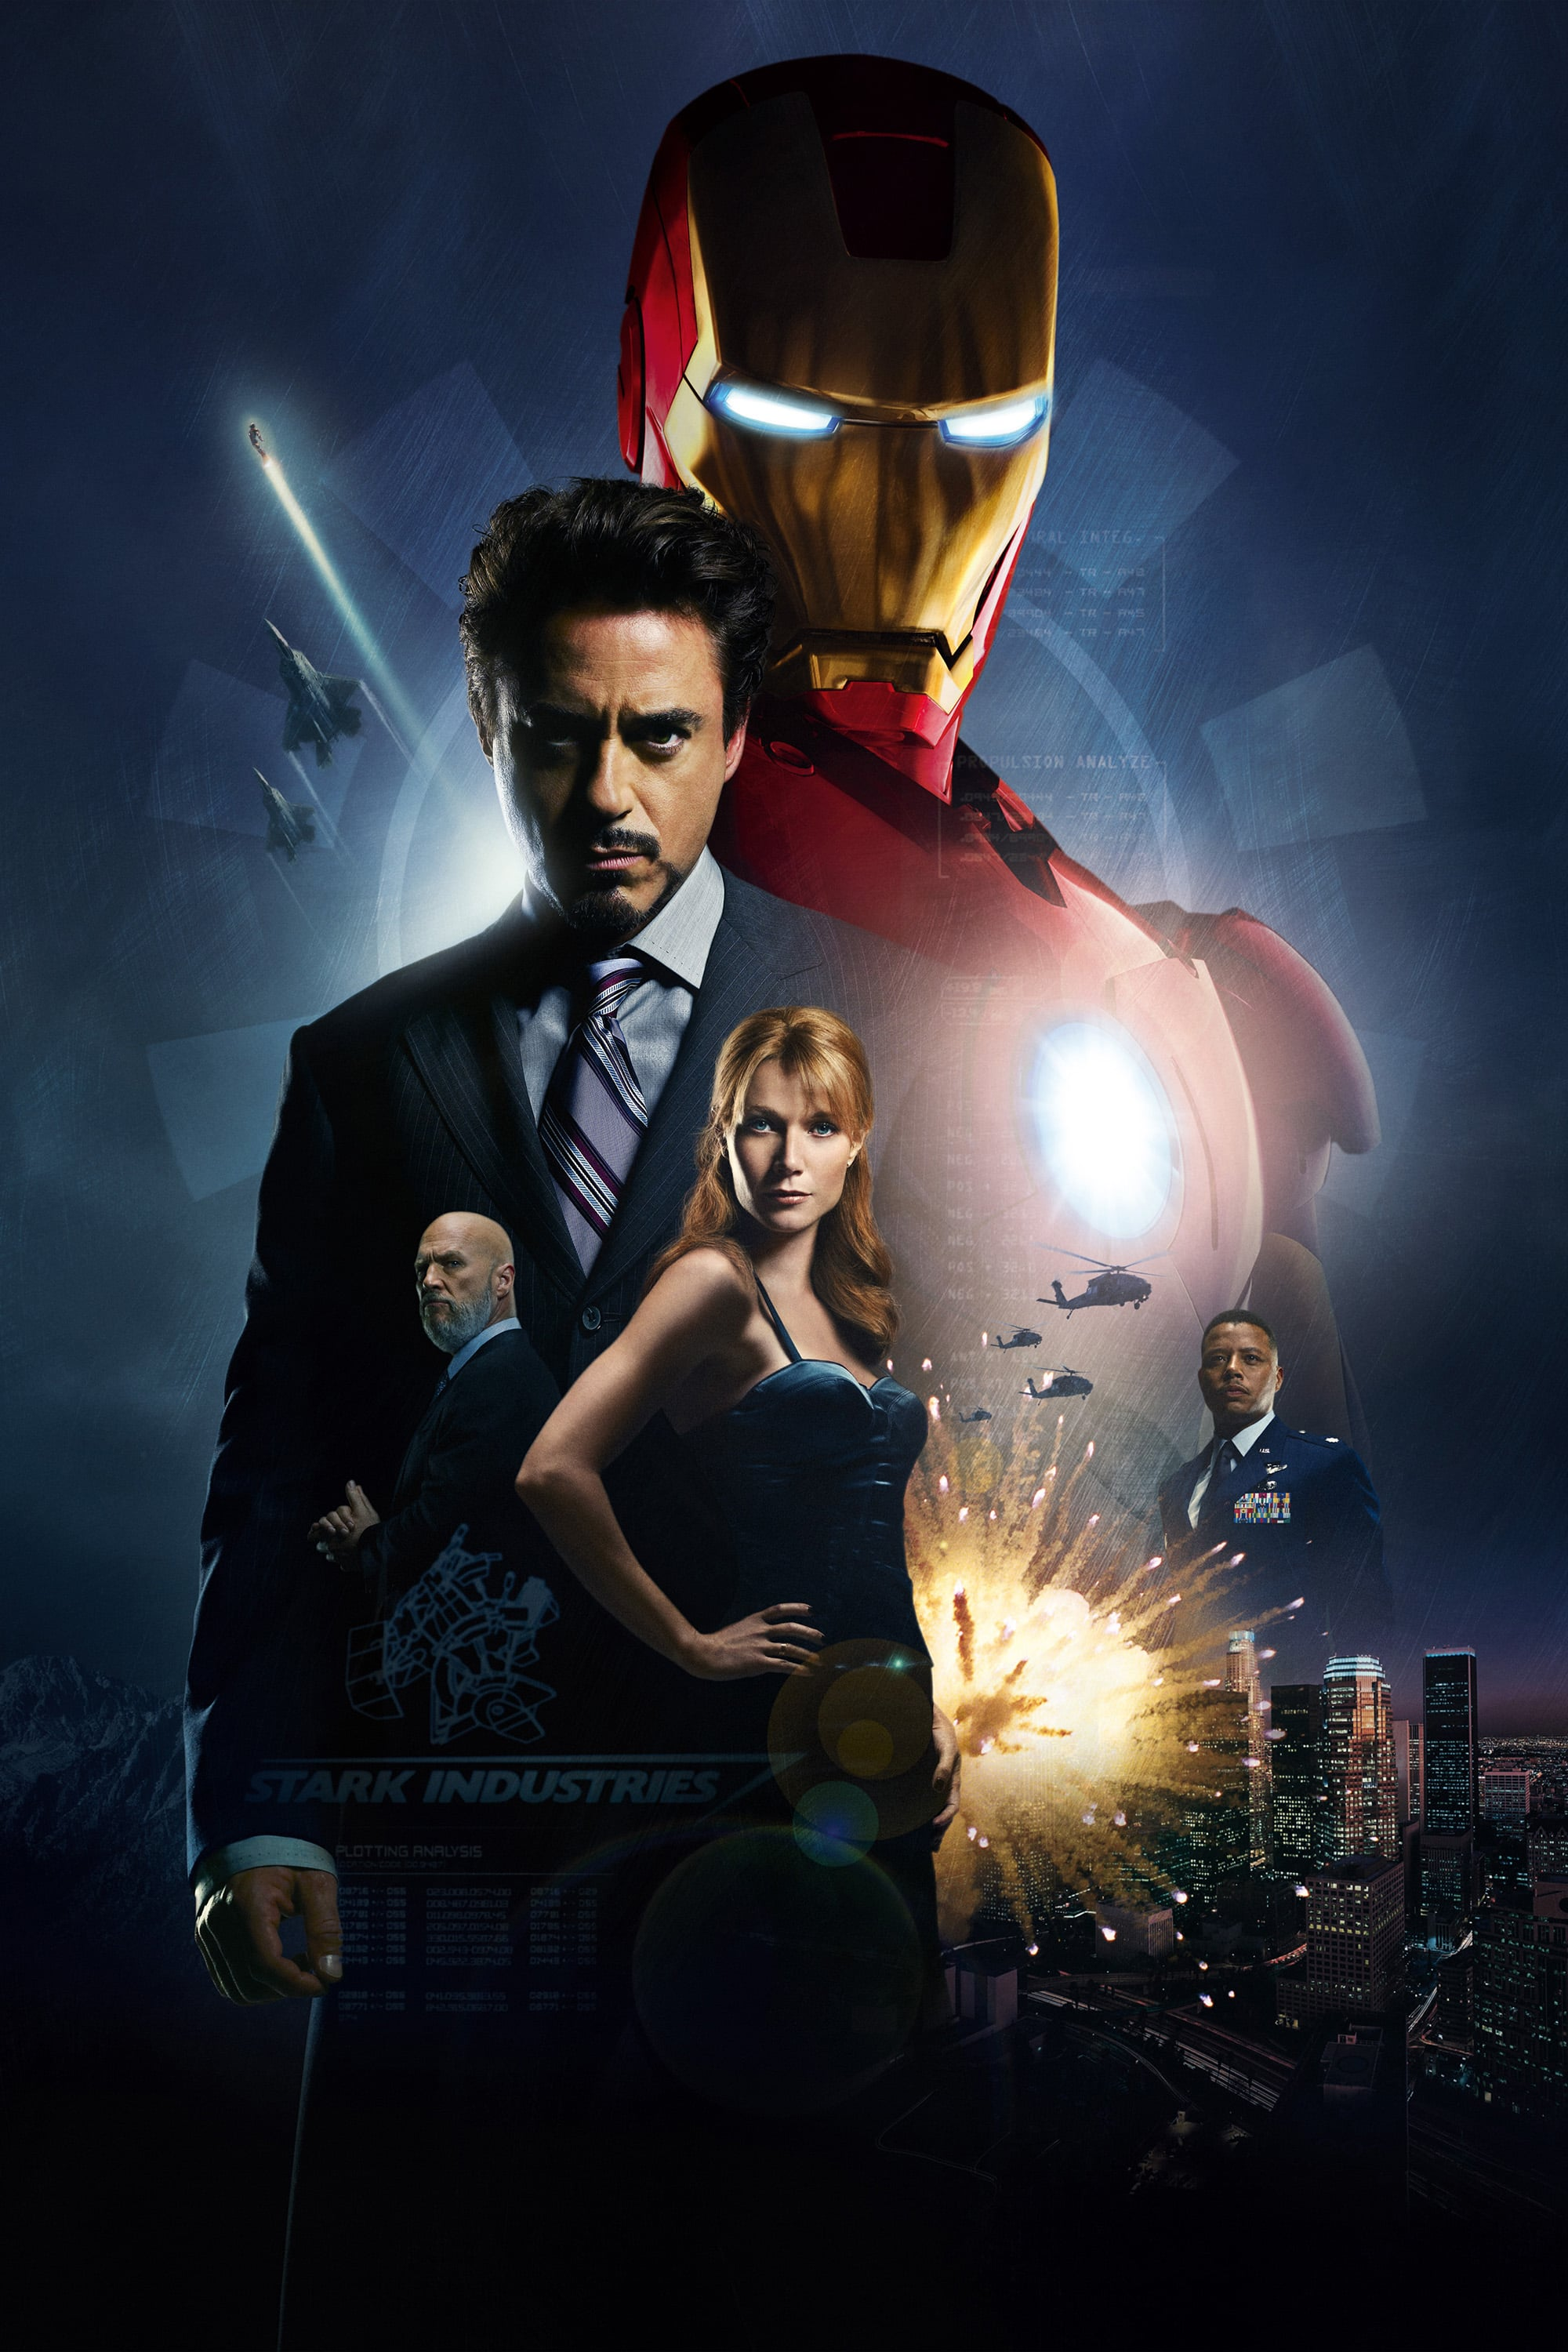 iron man poster high quality HD printable wallpapers 2008 tony stark robert downey jr